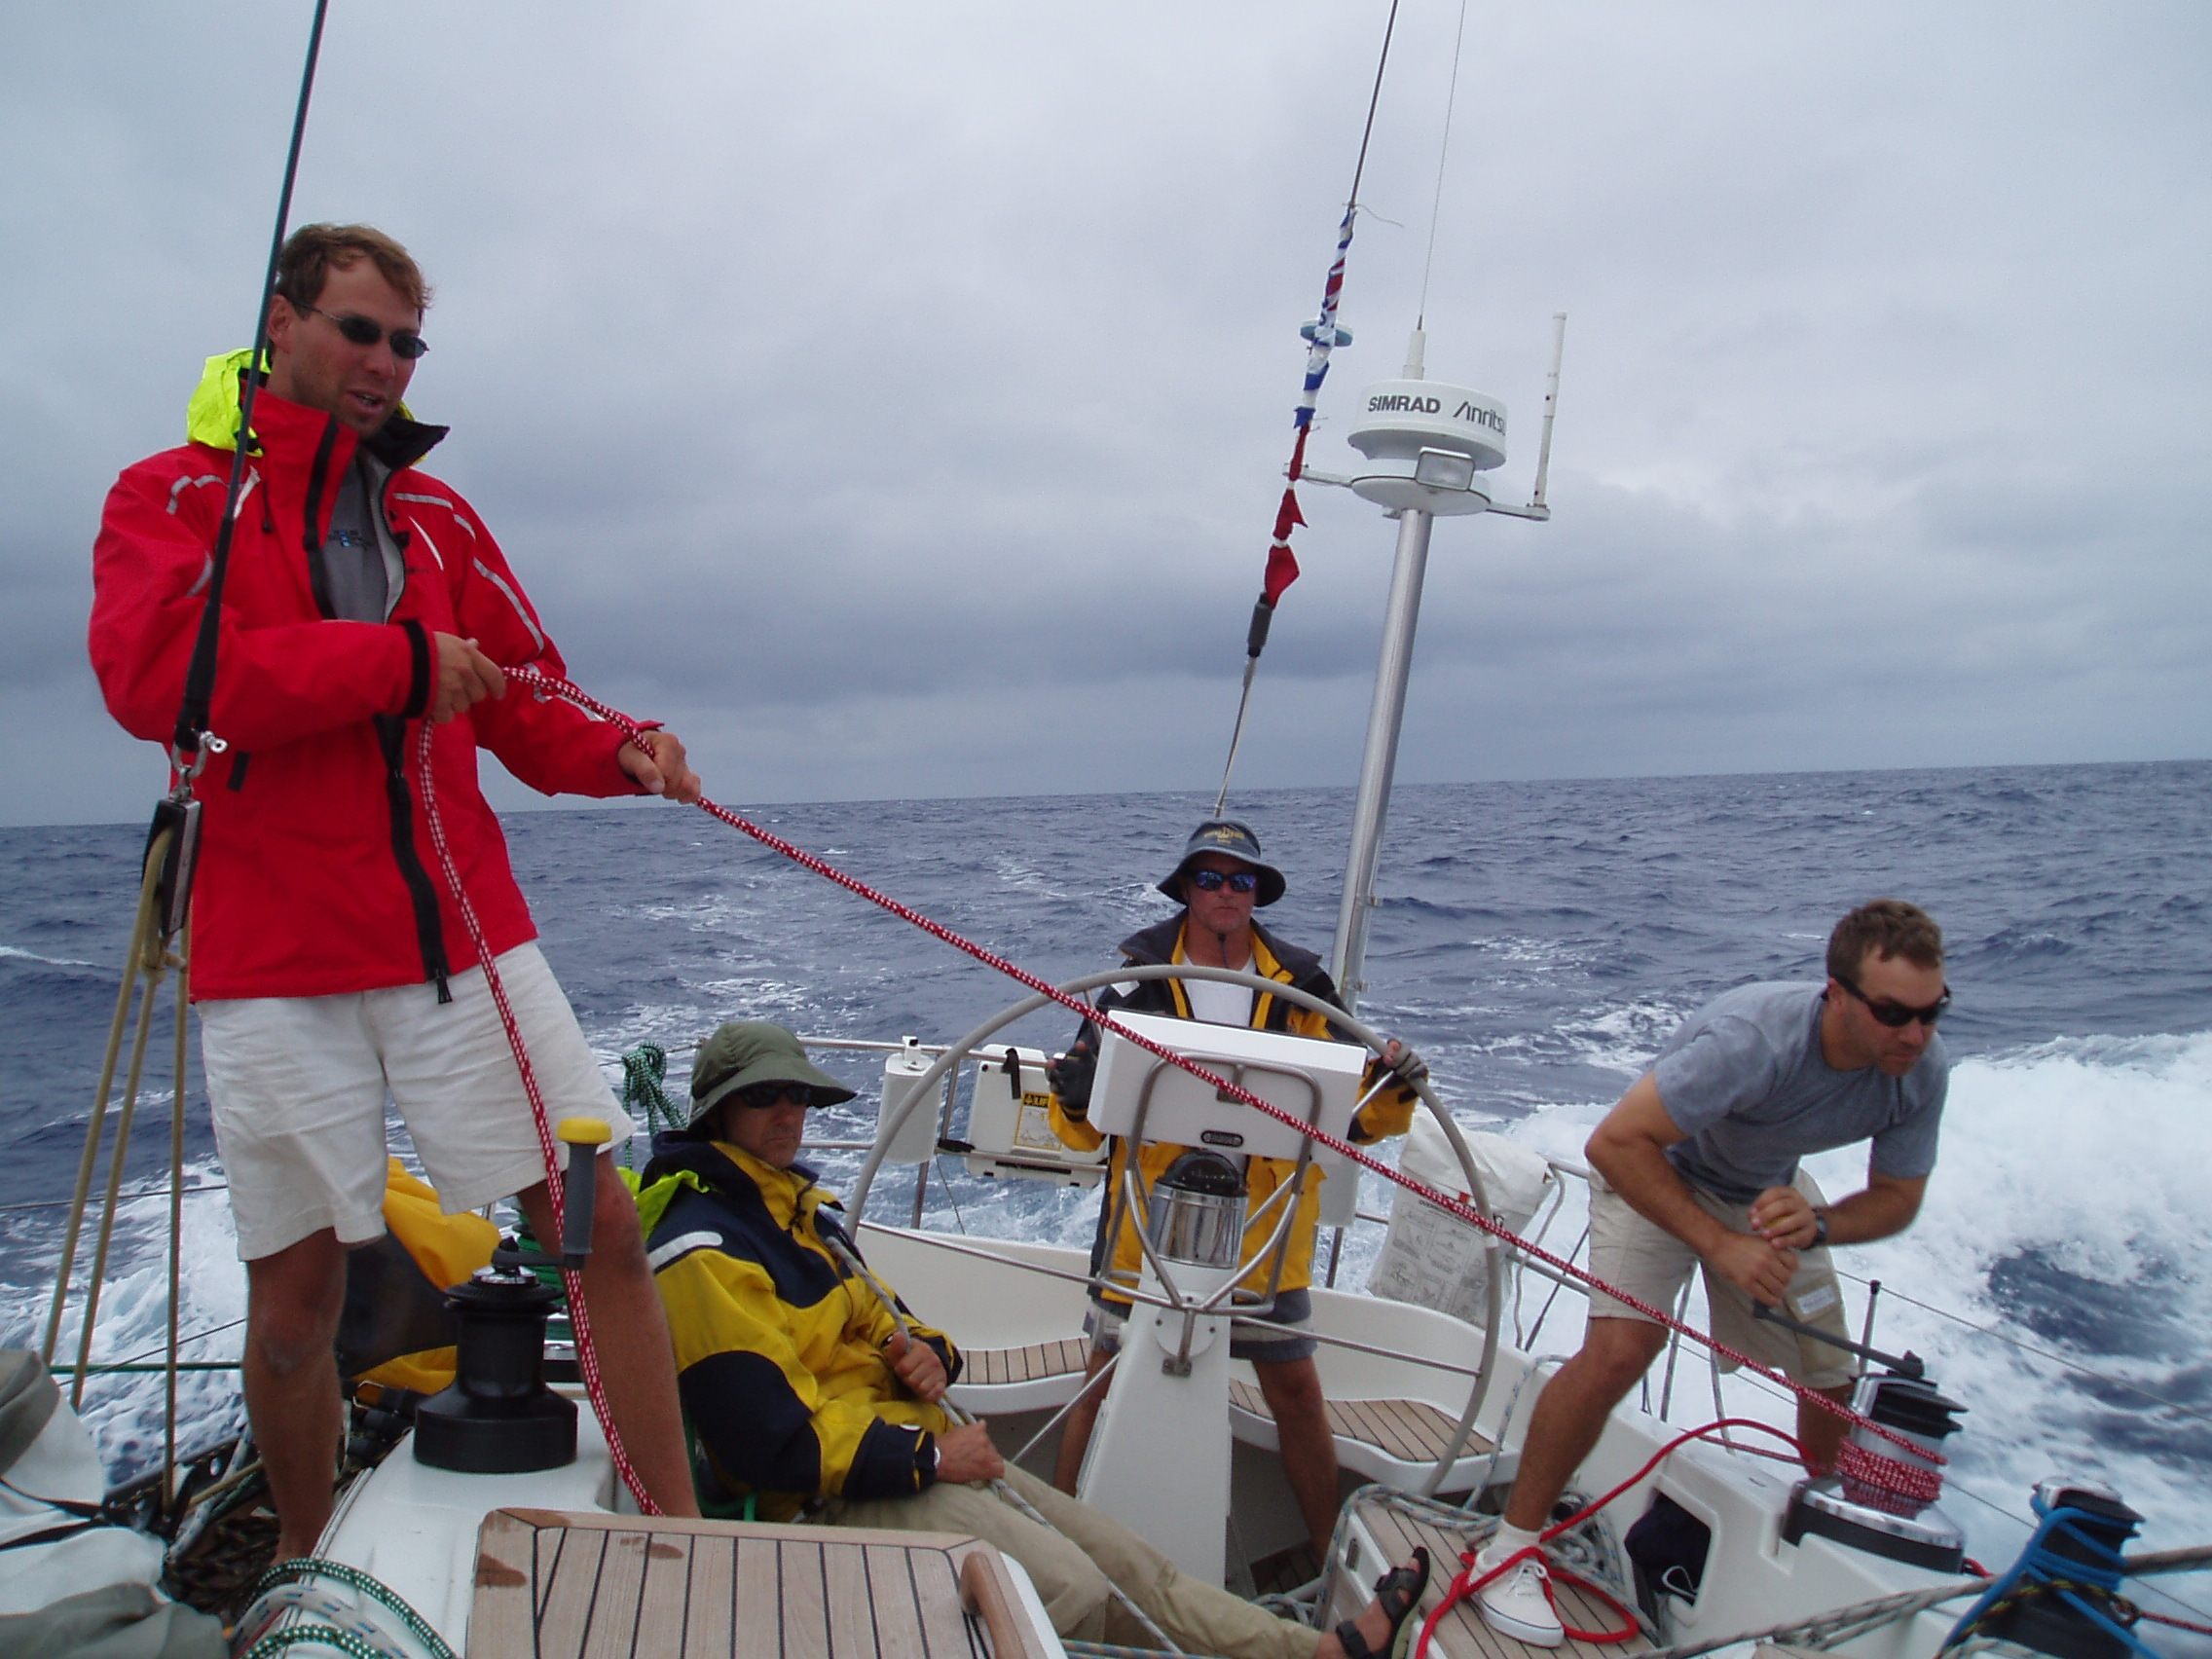 That's Paul trimming the chute en route to Hawaii on another S&S Swan 48.